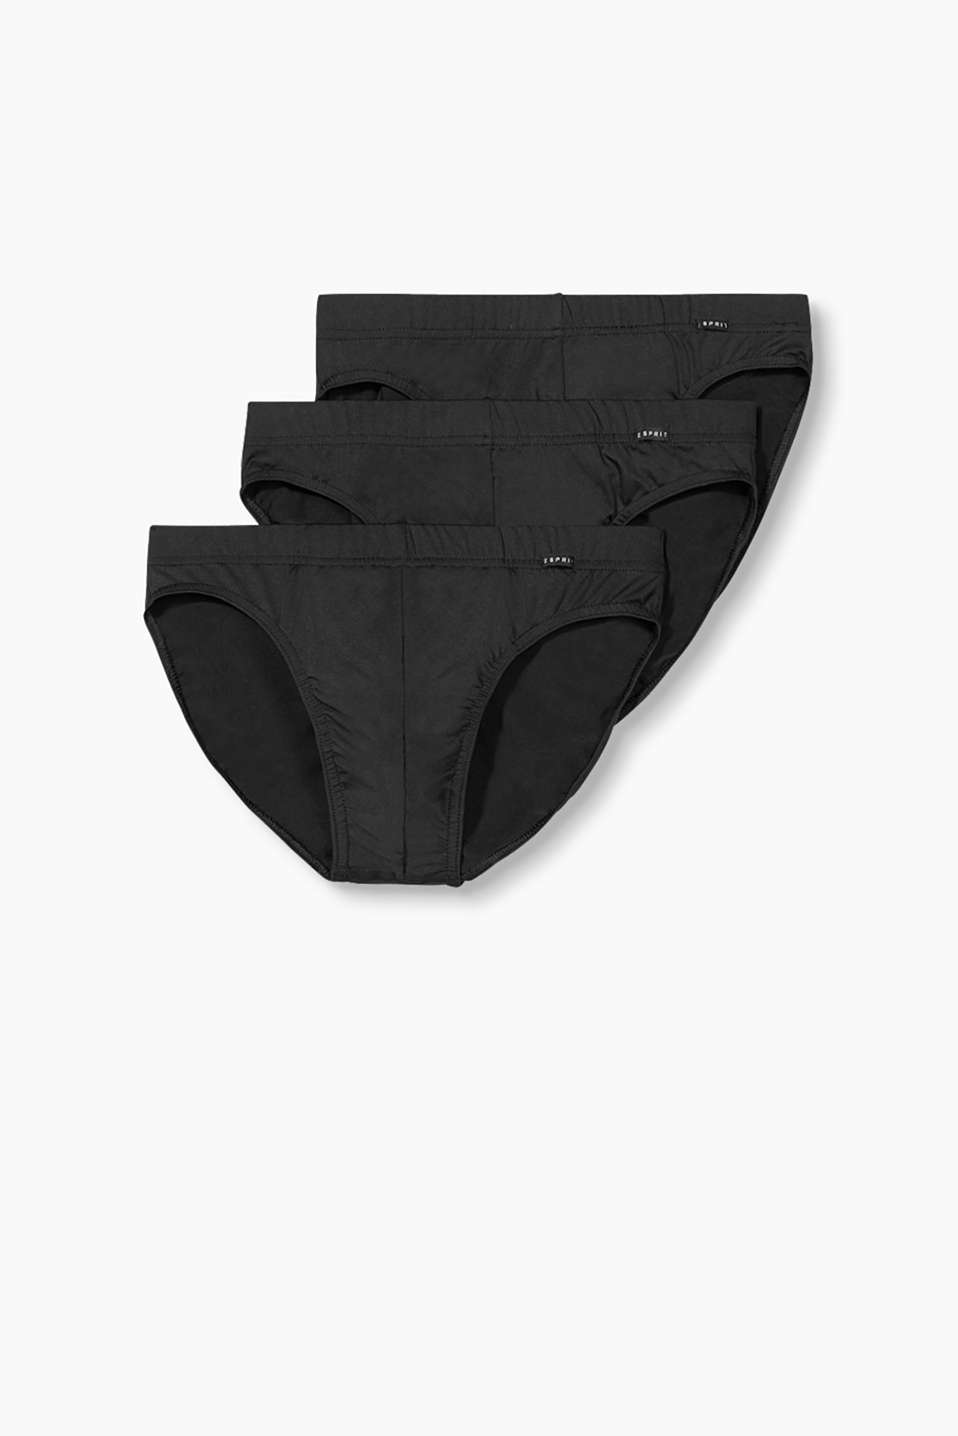 Esprit - Three pack of micro briefs